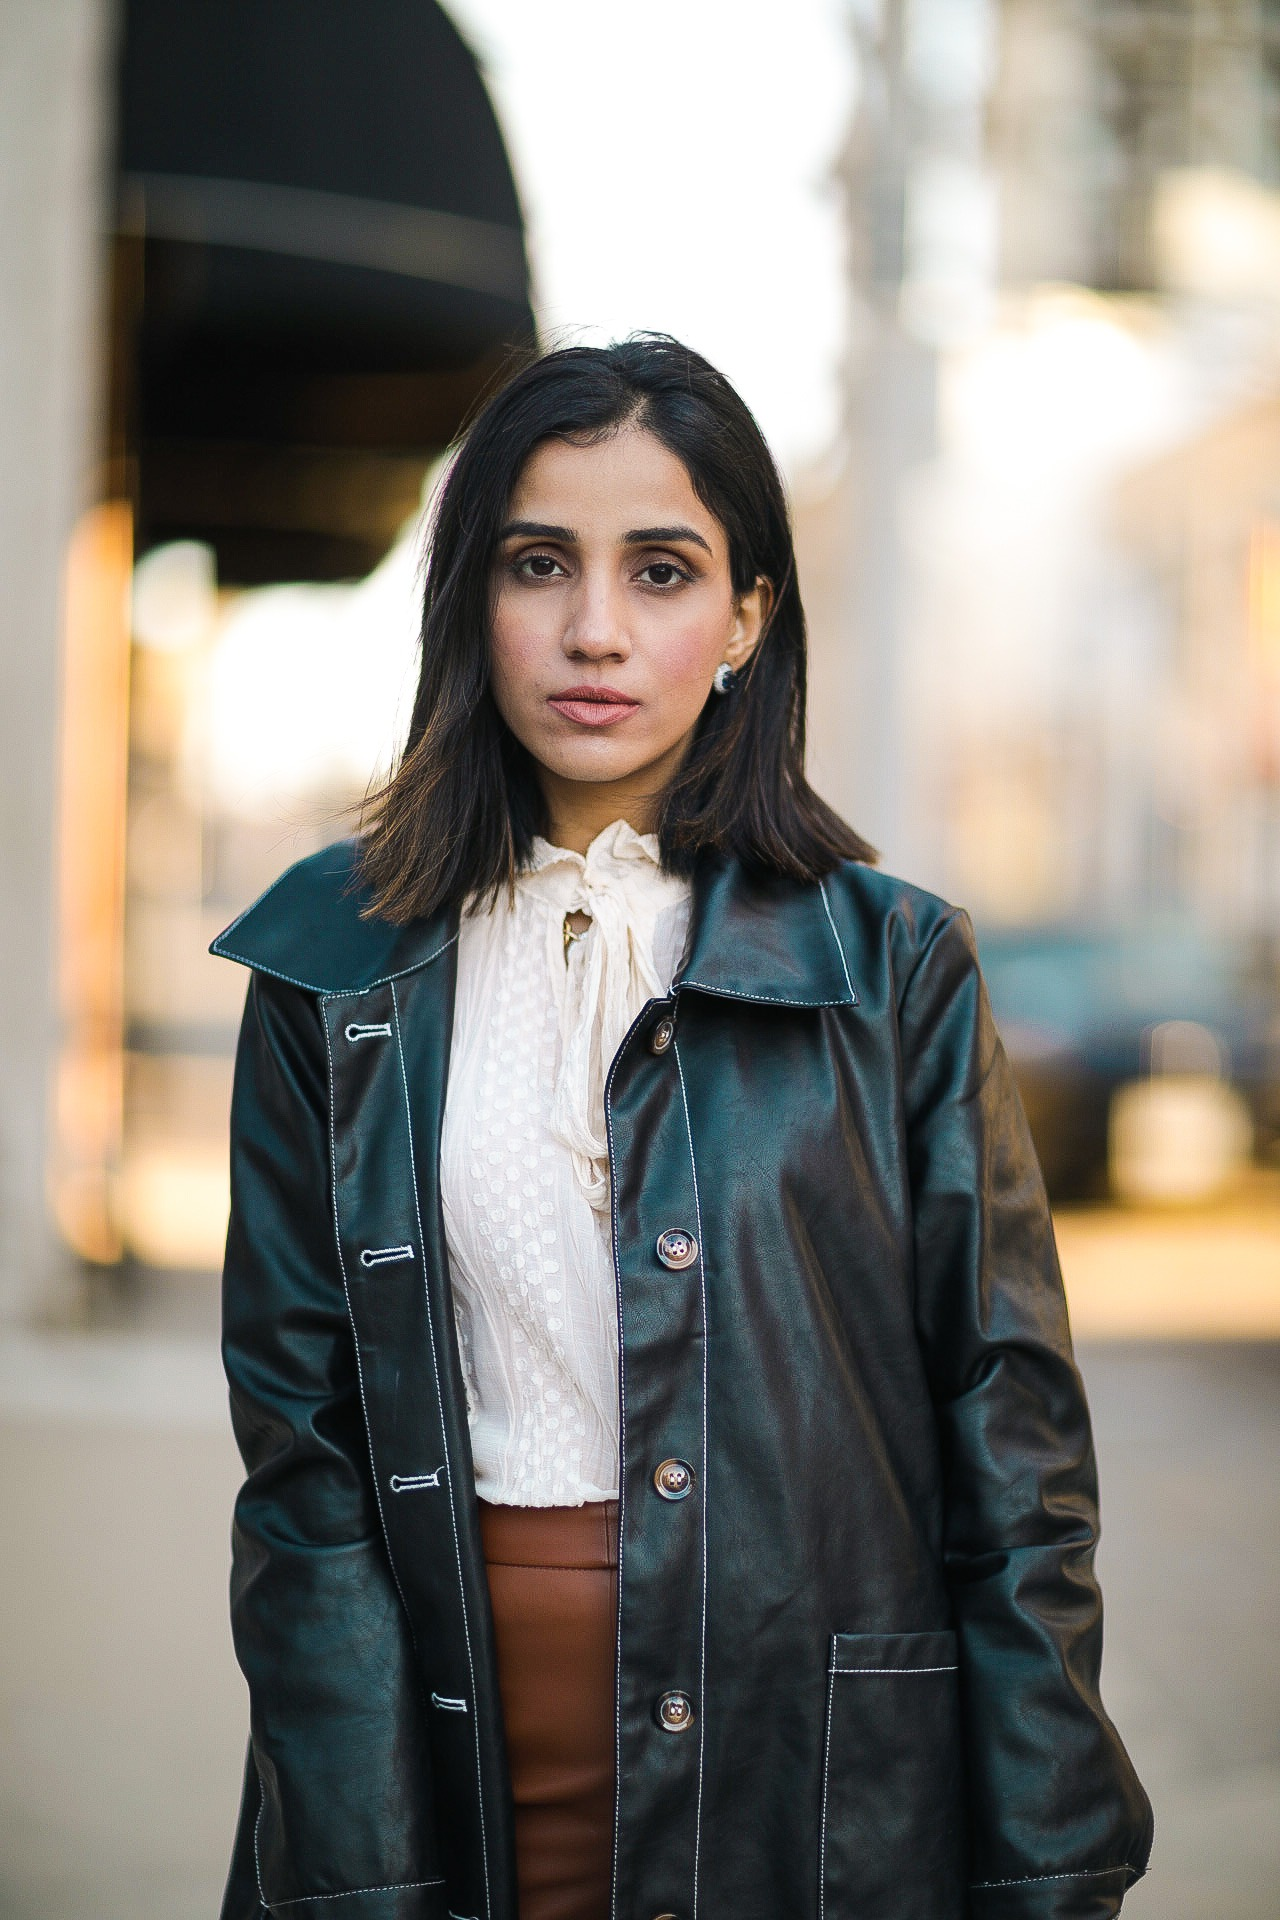 How to Keep Your Hair Healthy in Fall faiza inam remedy tricks tips dry hair low humidity sincerelyhumble 2